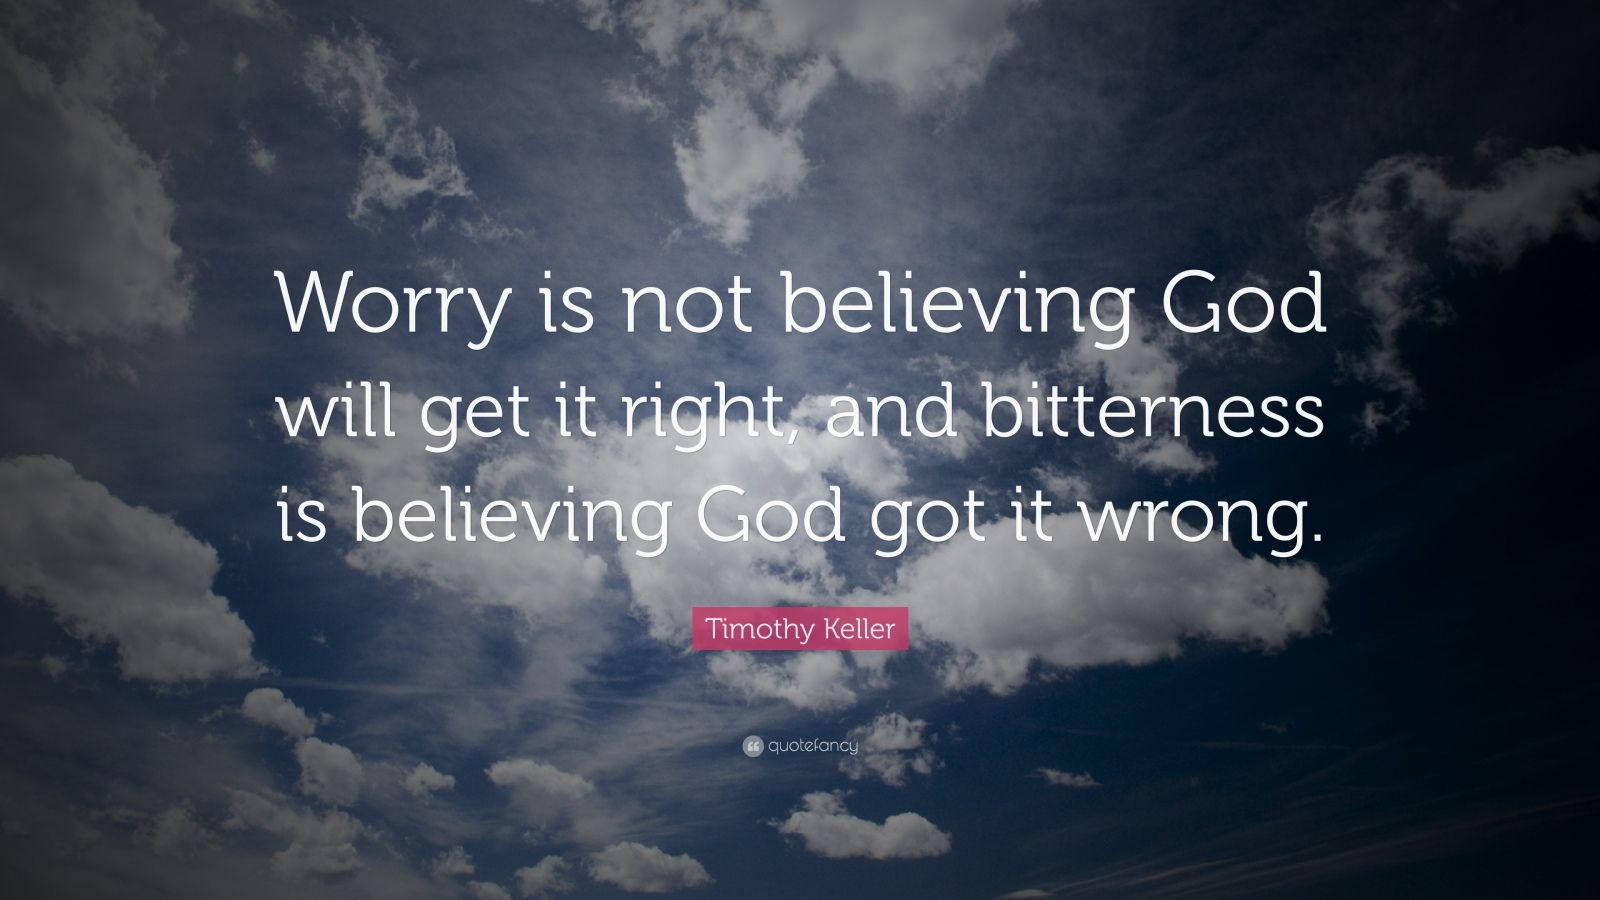 """Timothy Keller Quote: """"Worry is not believing God will get it right, and bitterness is believing God got it wrong."""""""